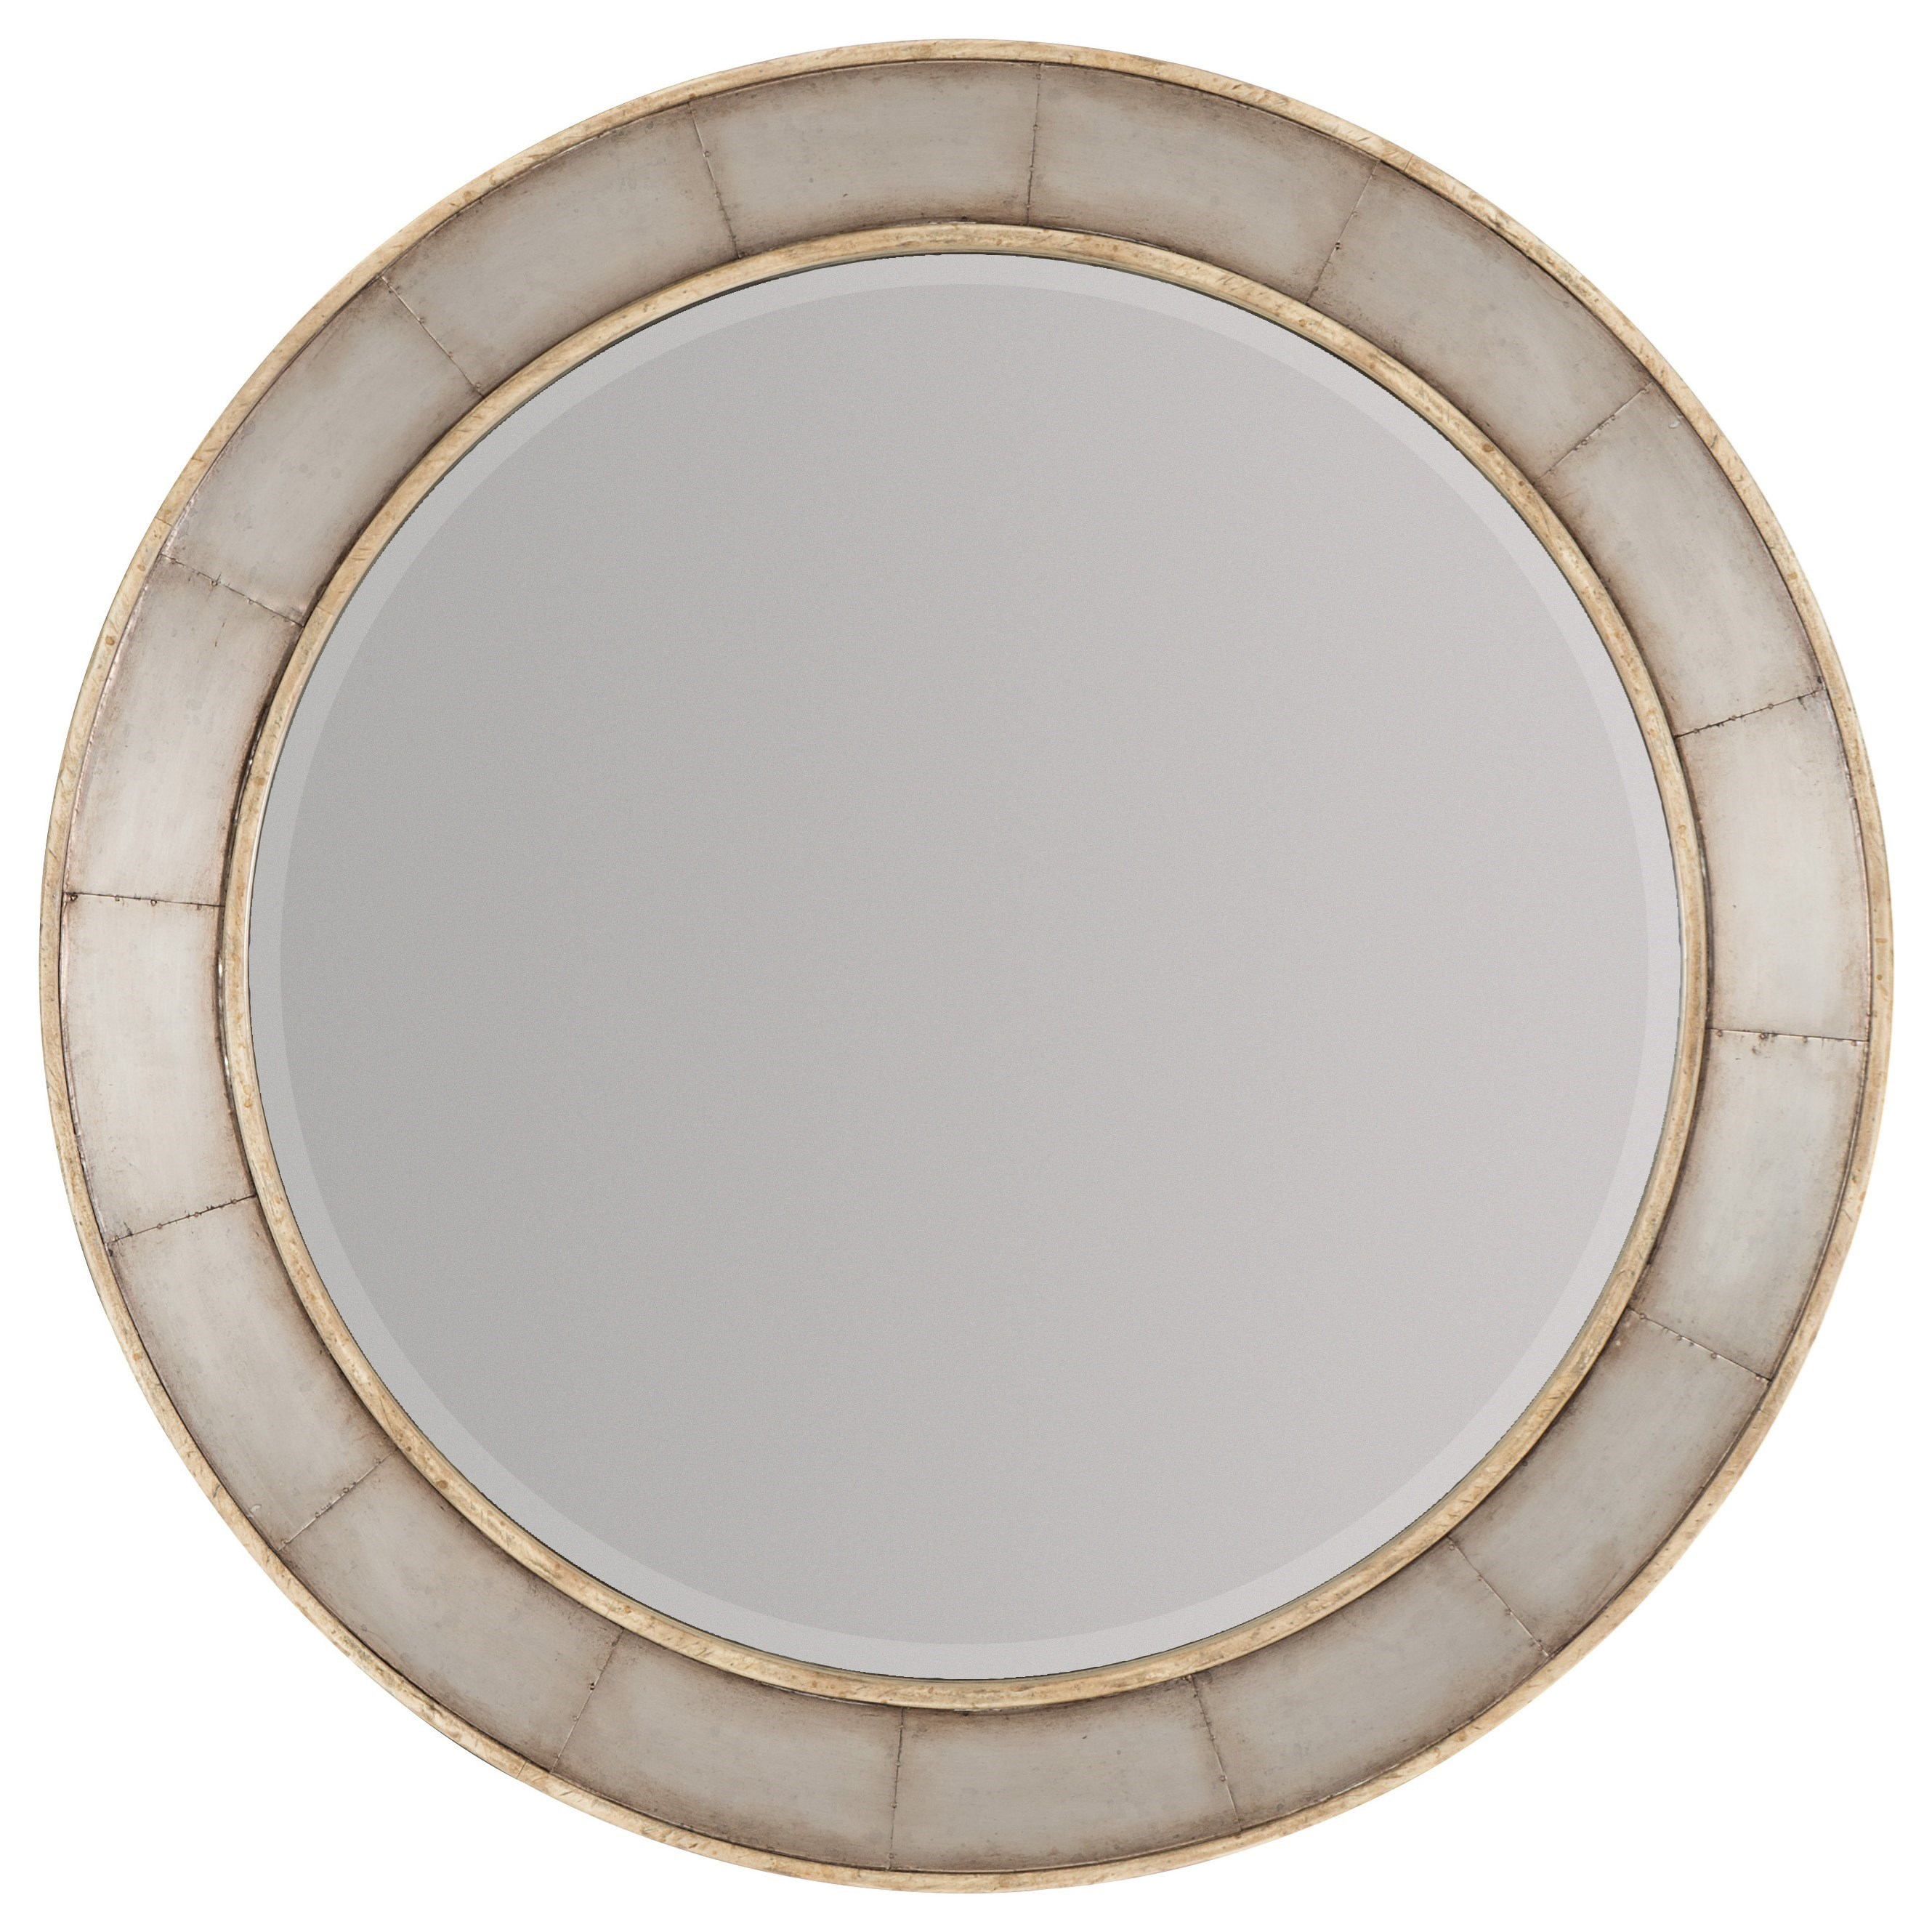 Hooker Furniture American Life-Urban Elevation Round Mirror - Item Number: 1620-90007-LTBR